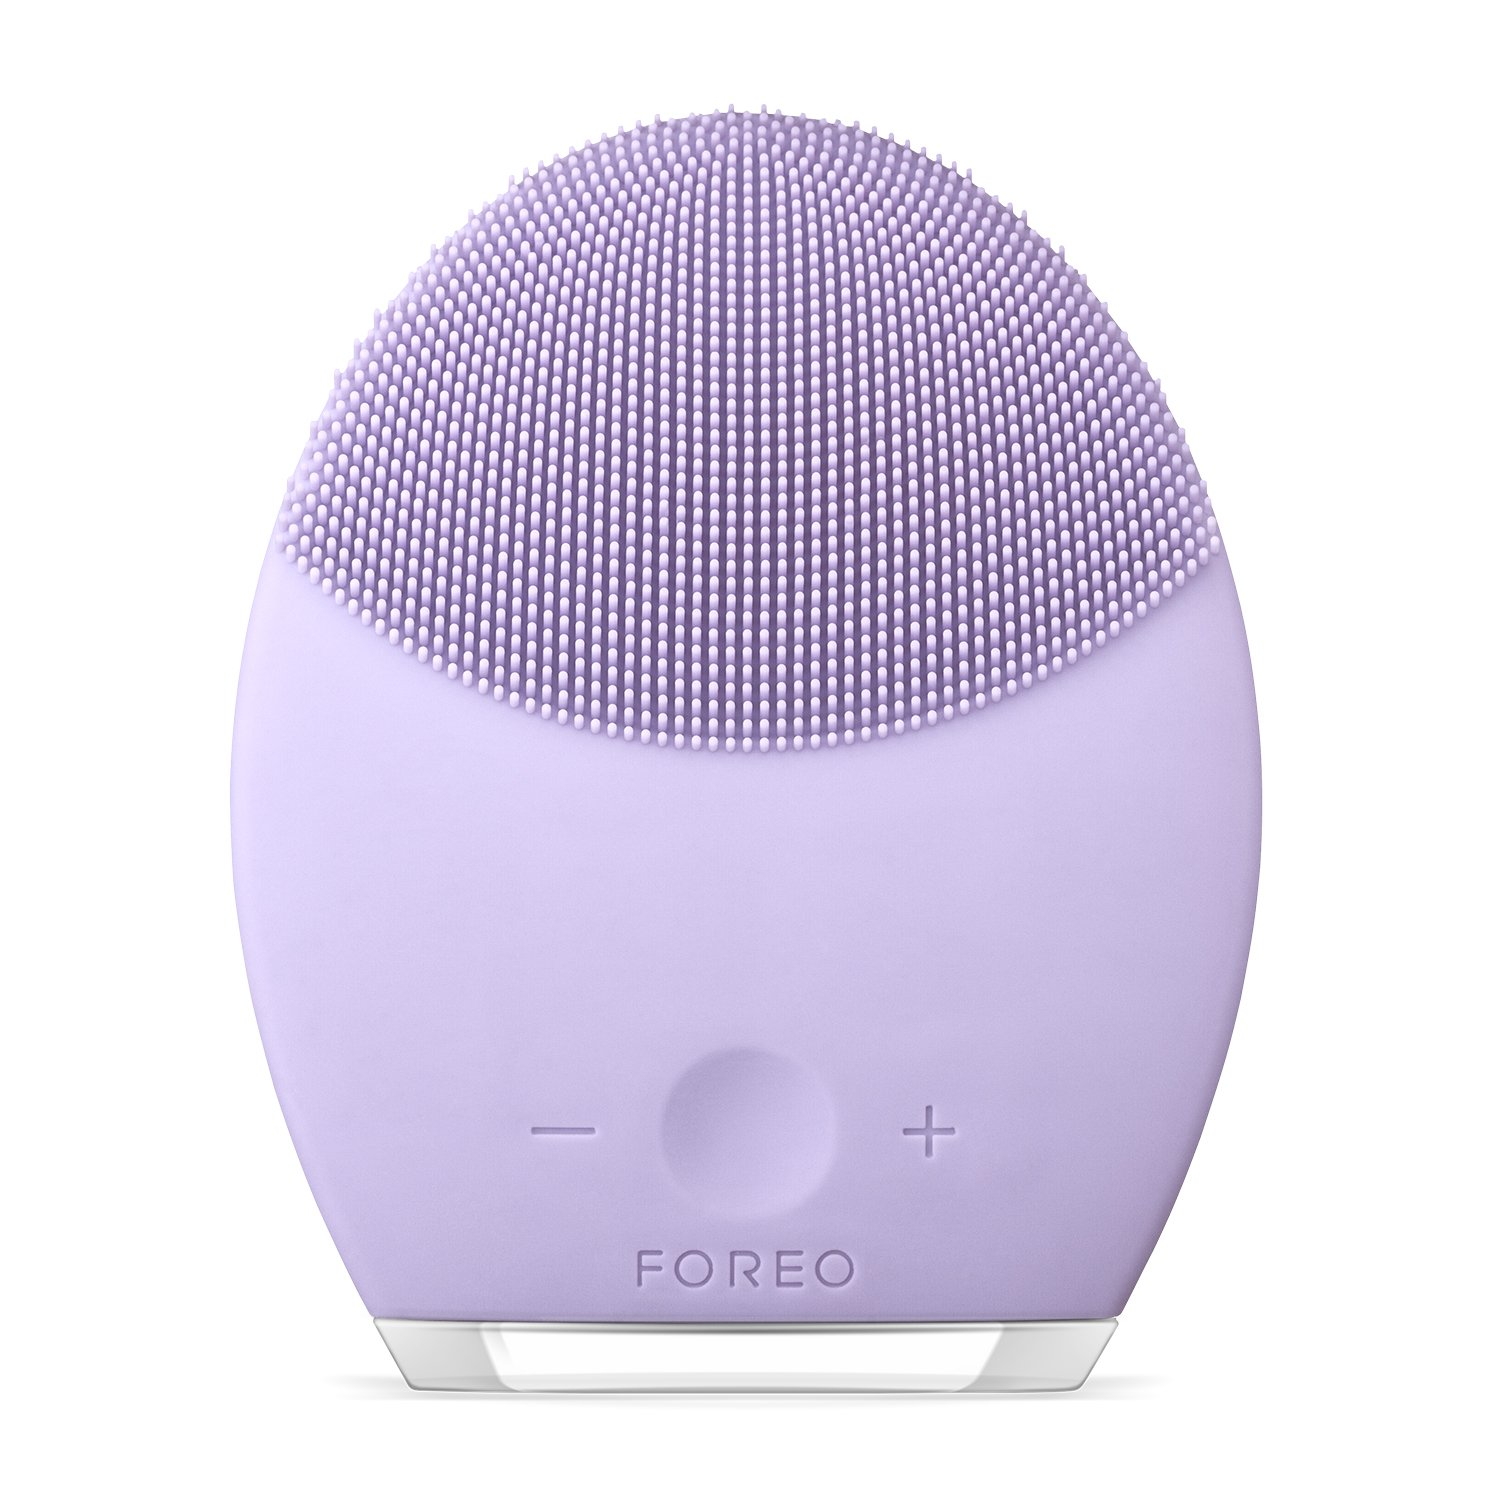 foreo luna mini 2 facial cleansing brush gentle exfoliation and sonic cleansing for. Black Bedroom Furniture Sets. Home Design Ideas